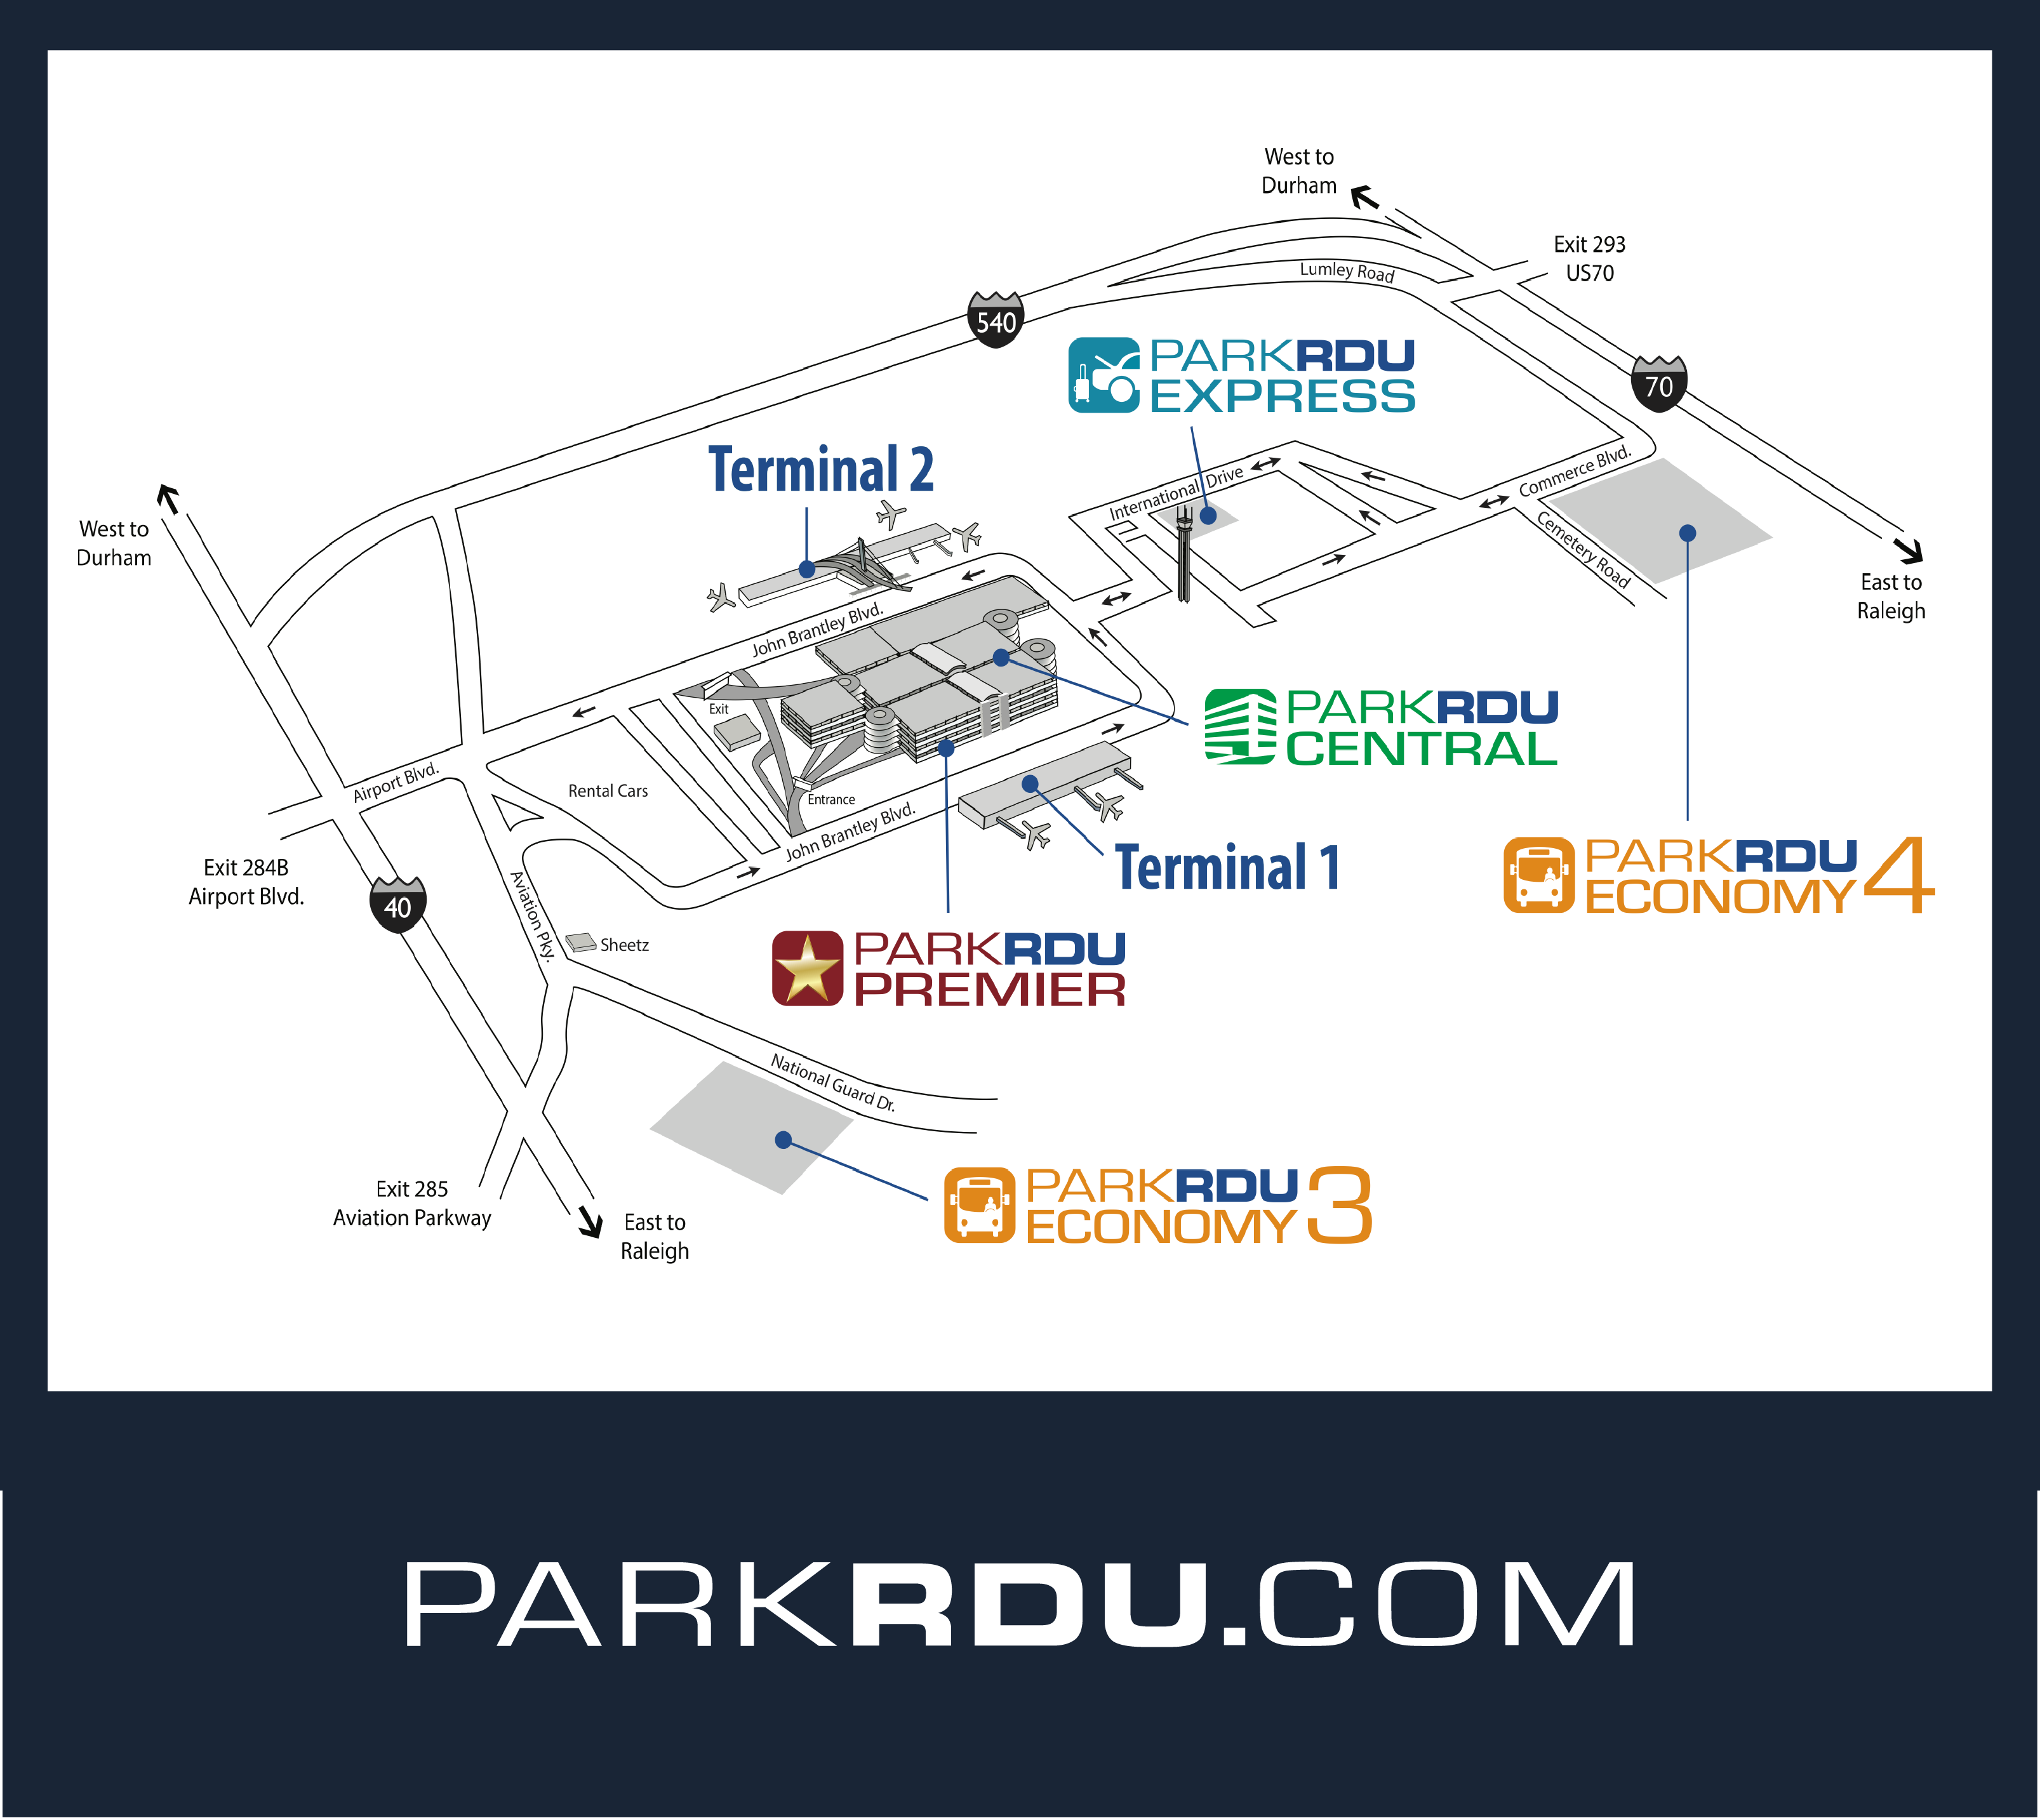 Book your parking Rdu Airport Map on ewn airport map, evv airport map, rno airport map, mfe airport map, lft airport map, fnt airport map, mlu airport map, fai airport map, clt airport map, bgr airport map, durham airport map, eug airport map, portland international airport map, ilm airport map, jac airport map, edi airport map, roc airport map, sbp airport map, airlines washington dulles airport map, fay airport map,